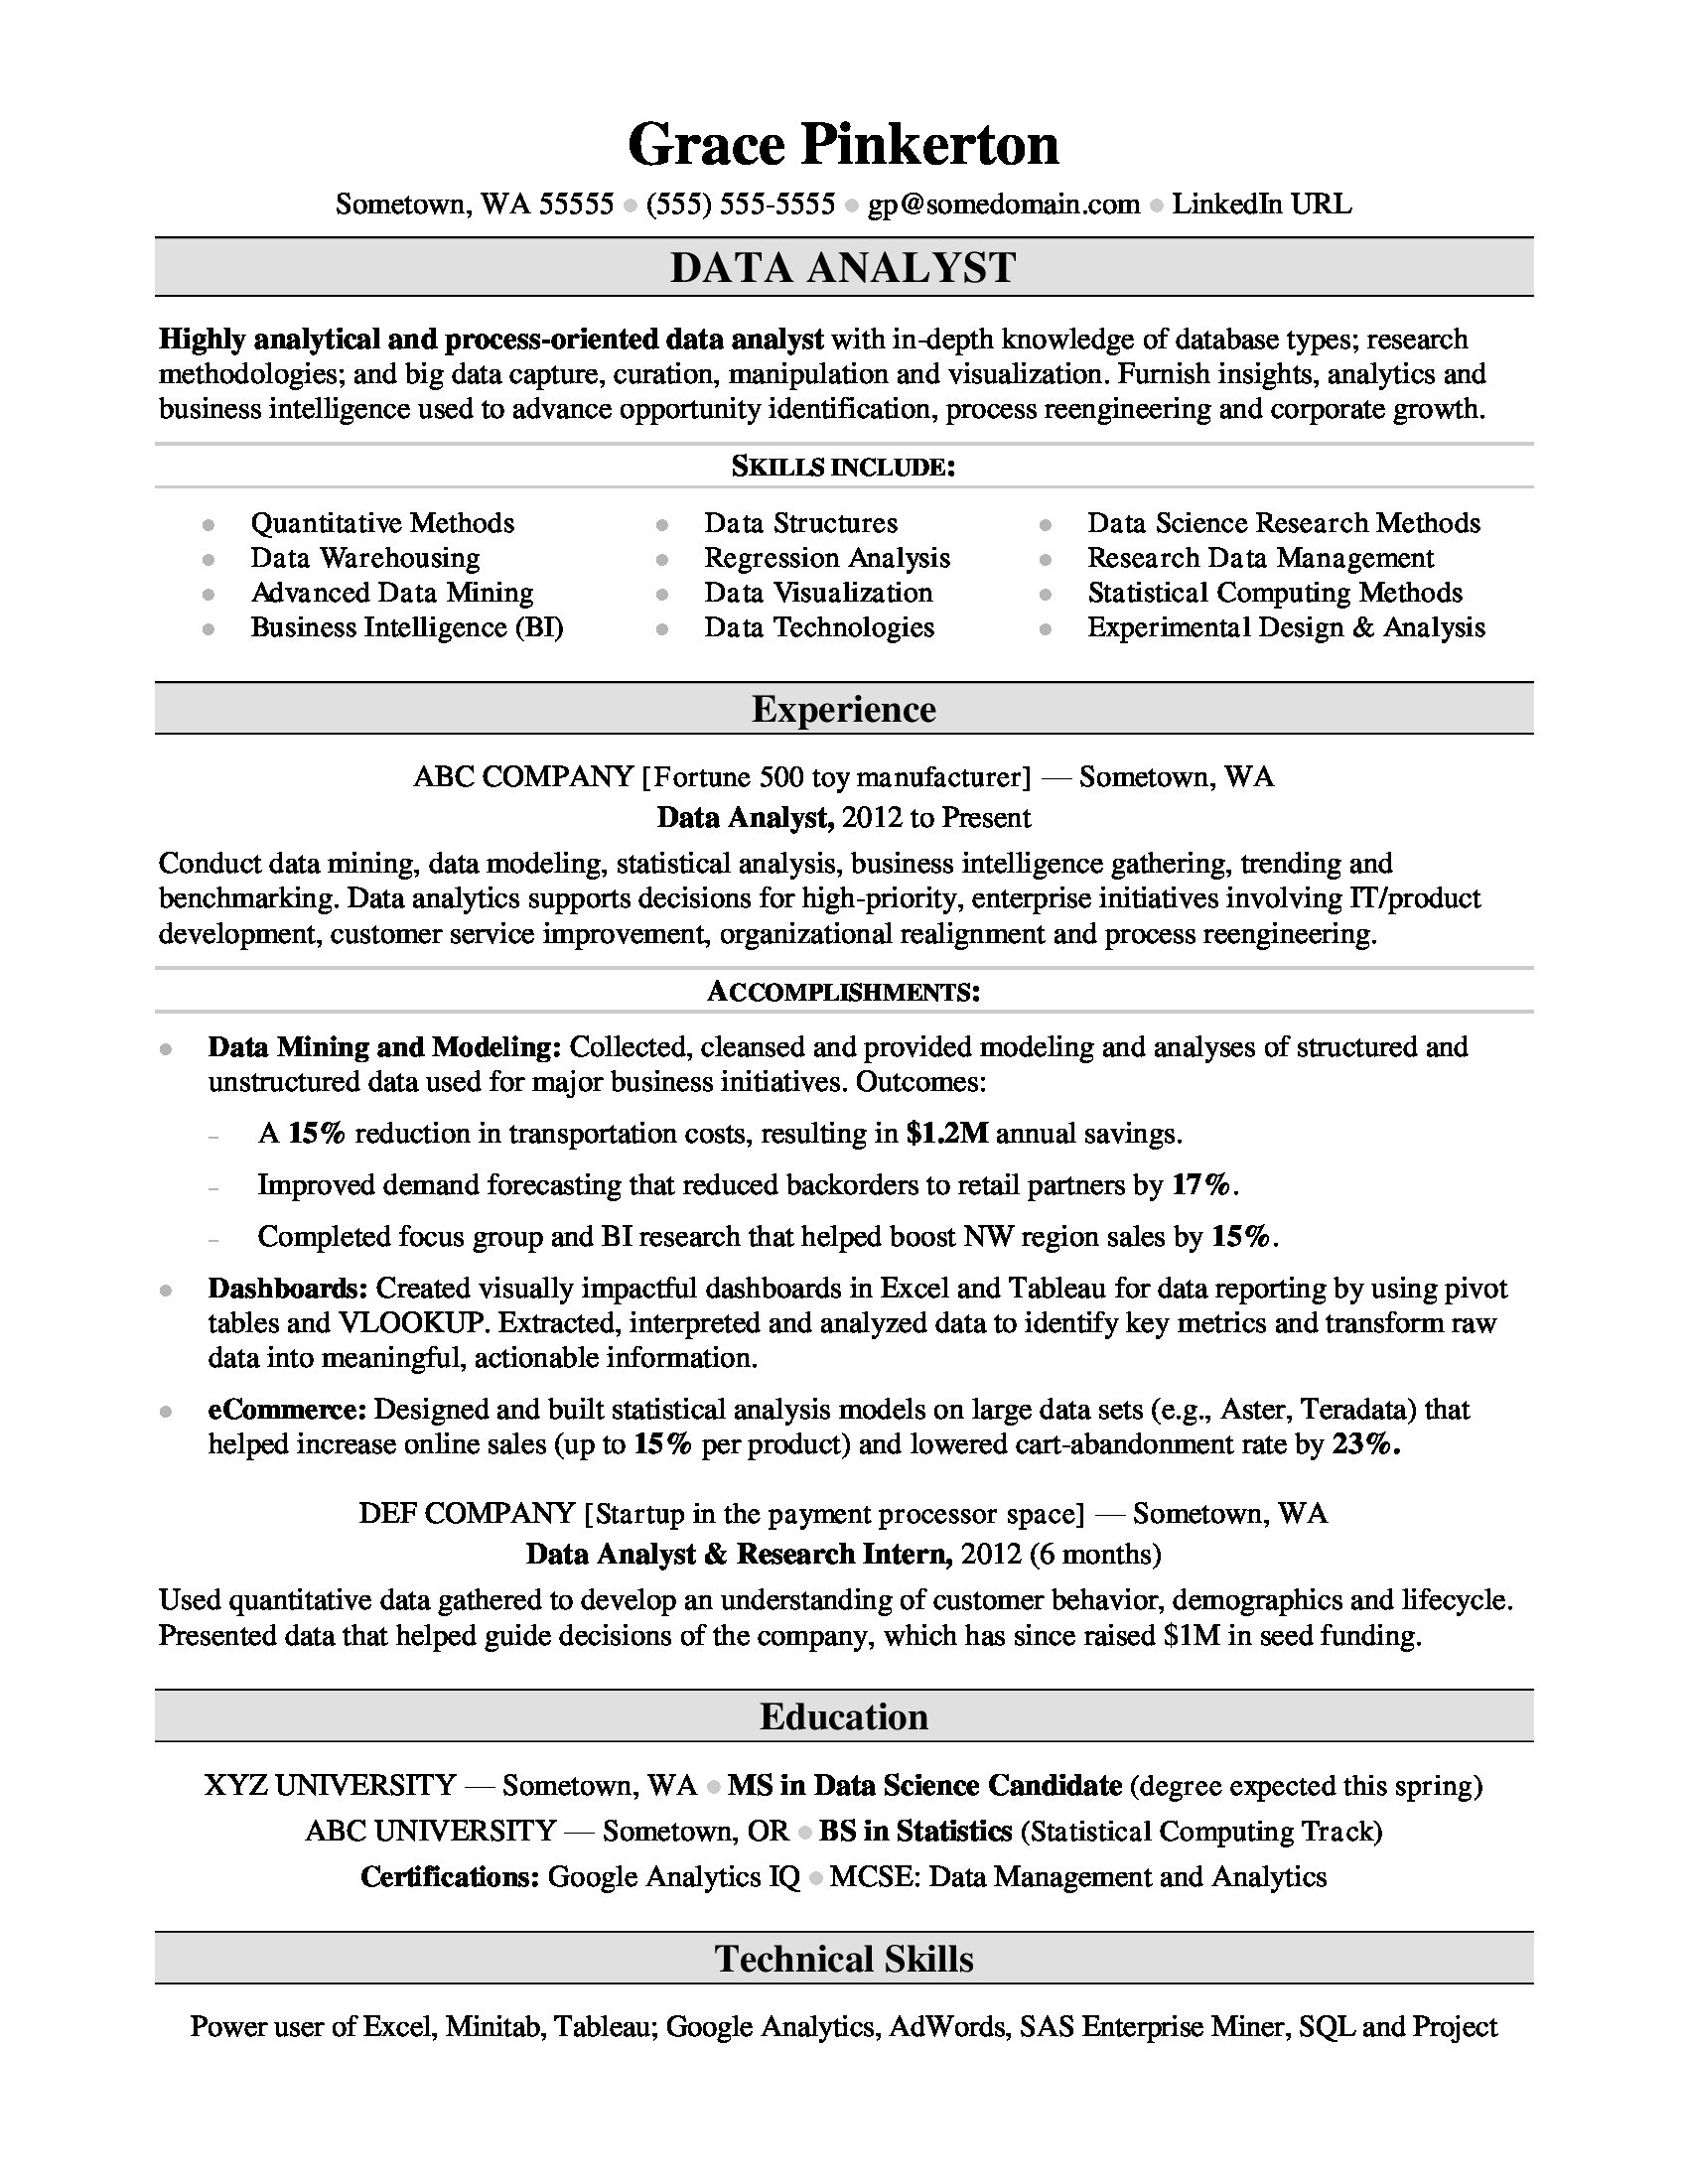 Data Analyst Resume Sample  Healthcare Analyst Resume